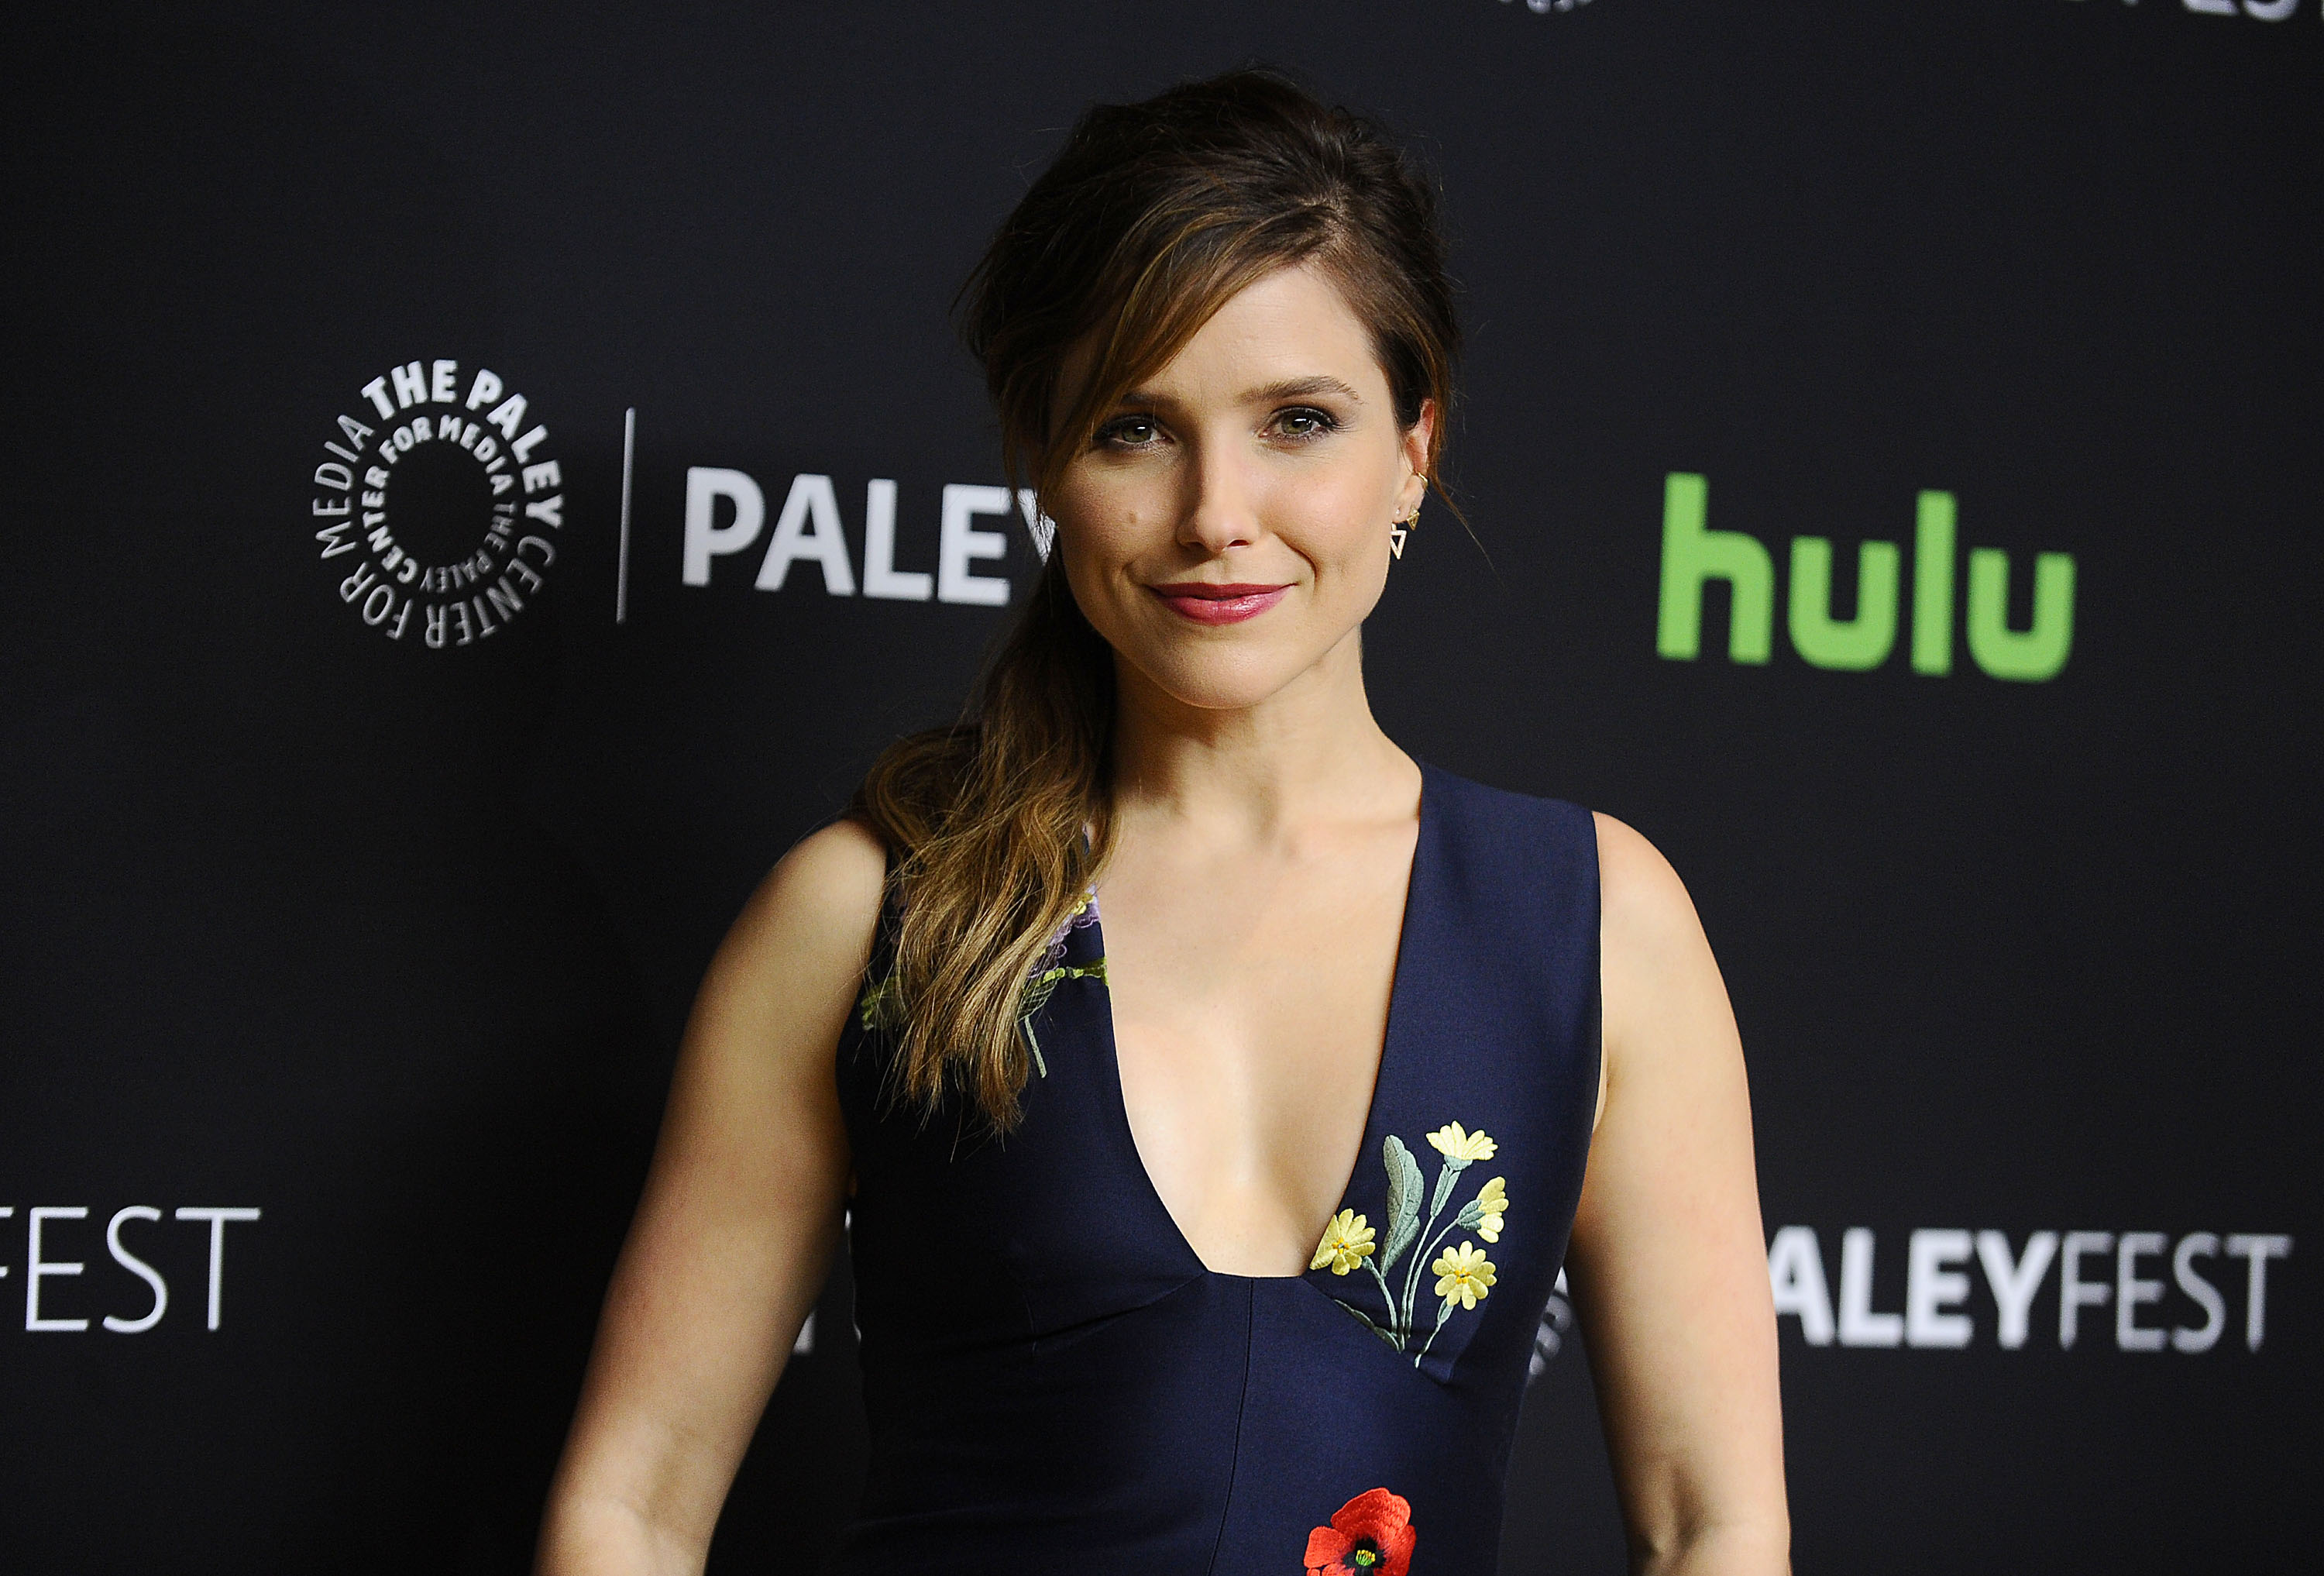 HOLLYWOOD, CA - MARCH 19:  Actress Sophia Bush attends the salute to Dick Wolf at the 33rd annual PaleyFest at Dolby Theatre on March 19, 2016 in Hollywood, California.  (Photo by Jason LaVeris/FilmMagic)